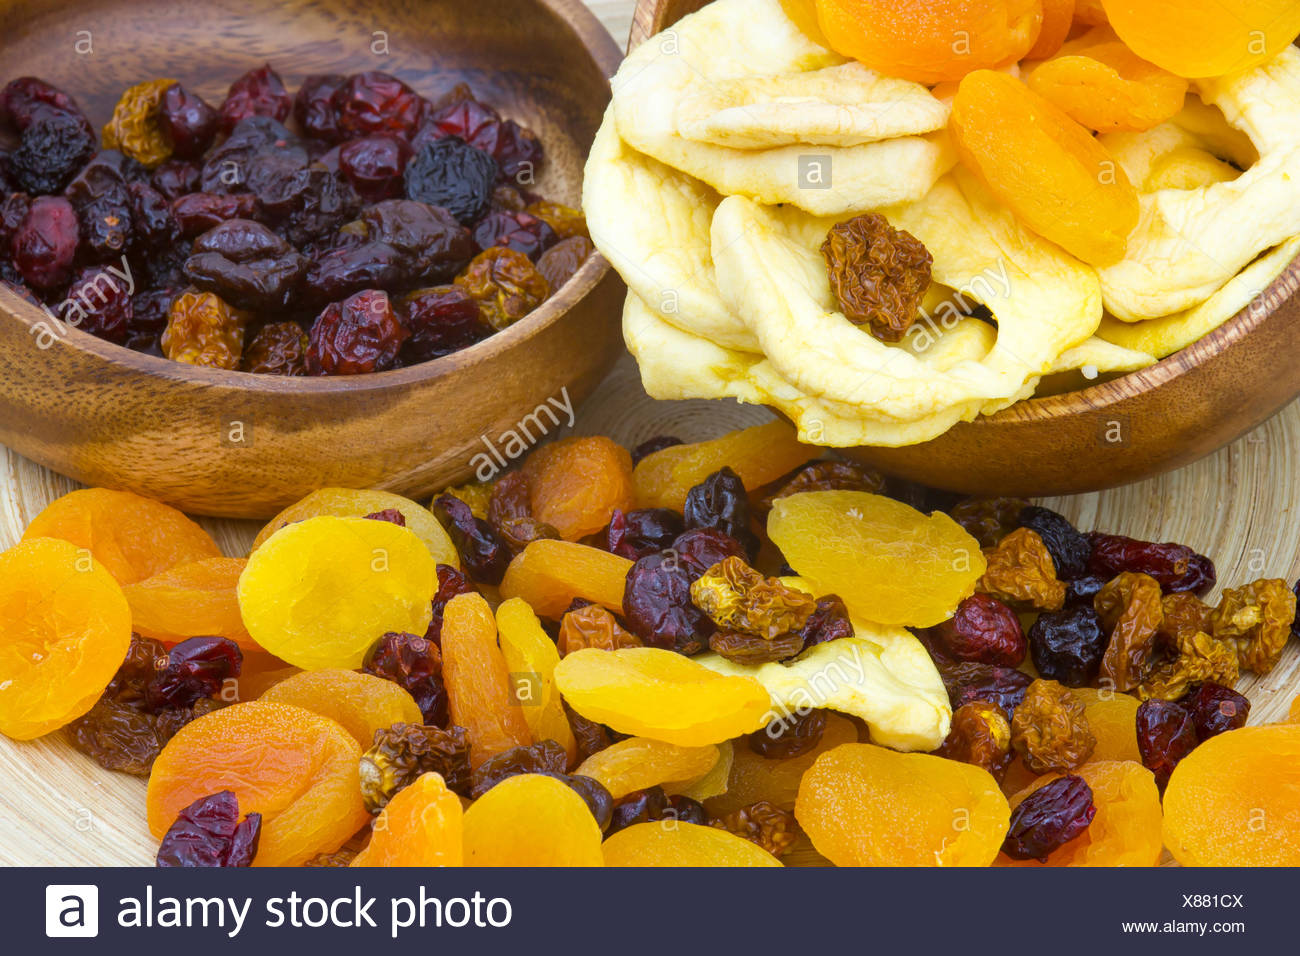 different dried fruits Stock Photo: 280459898 - Alamy